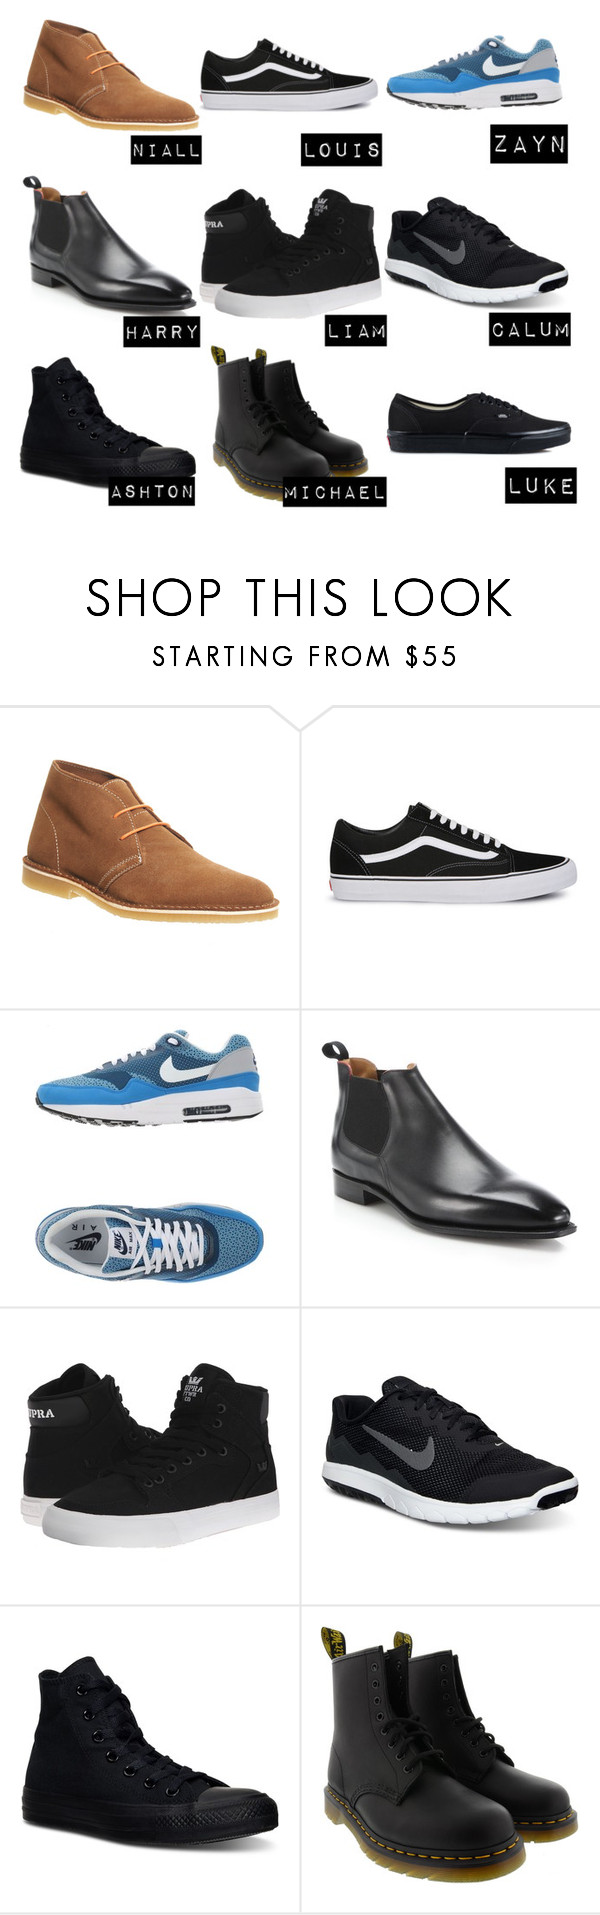 1d And 5sos Shoes By Hollynagle On Polyvore Featuring Office Vans Nike